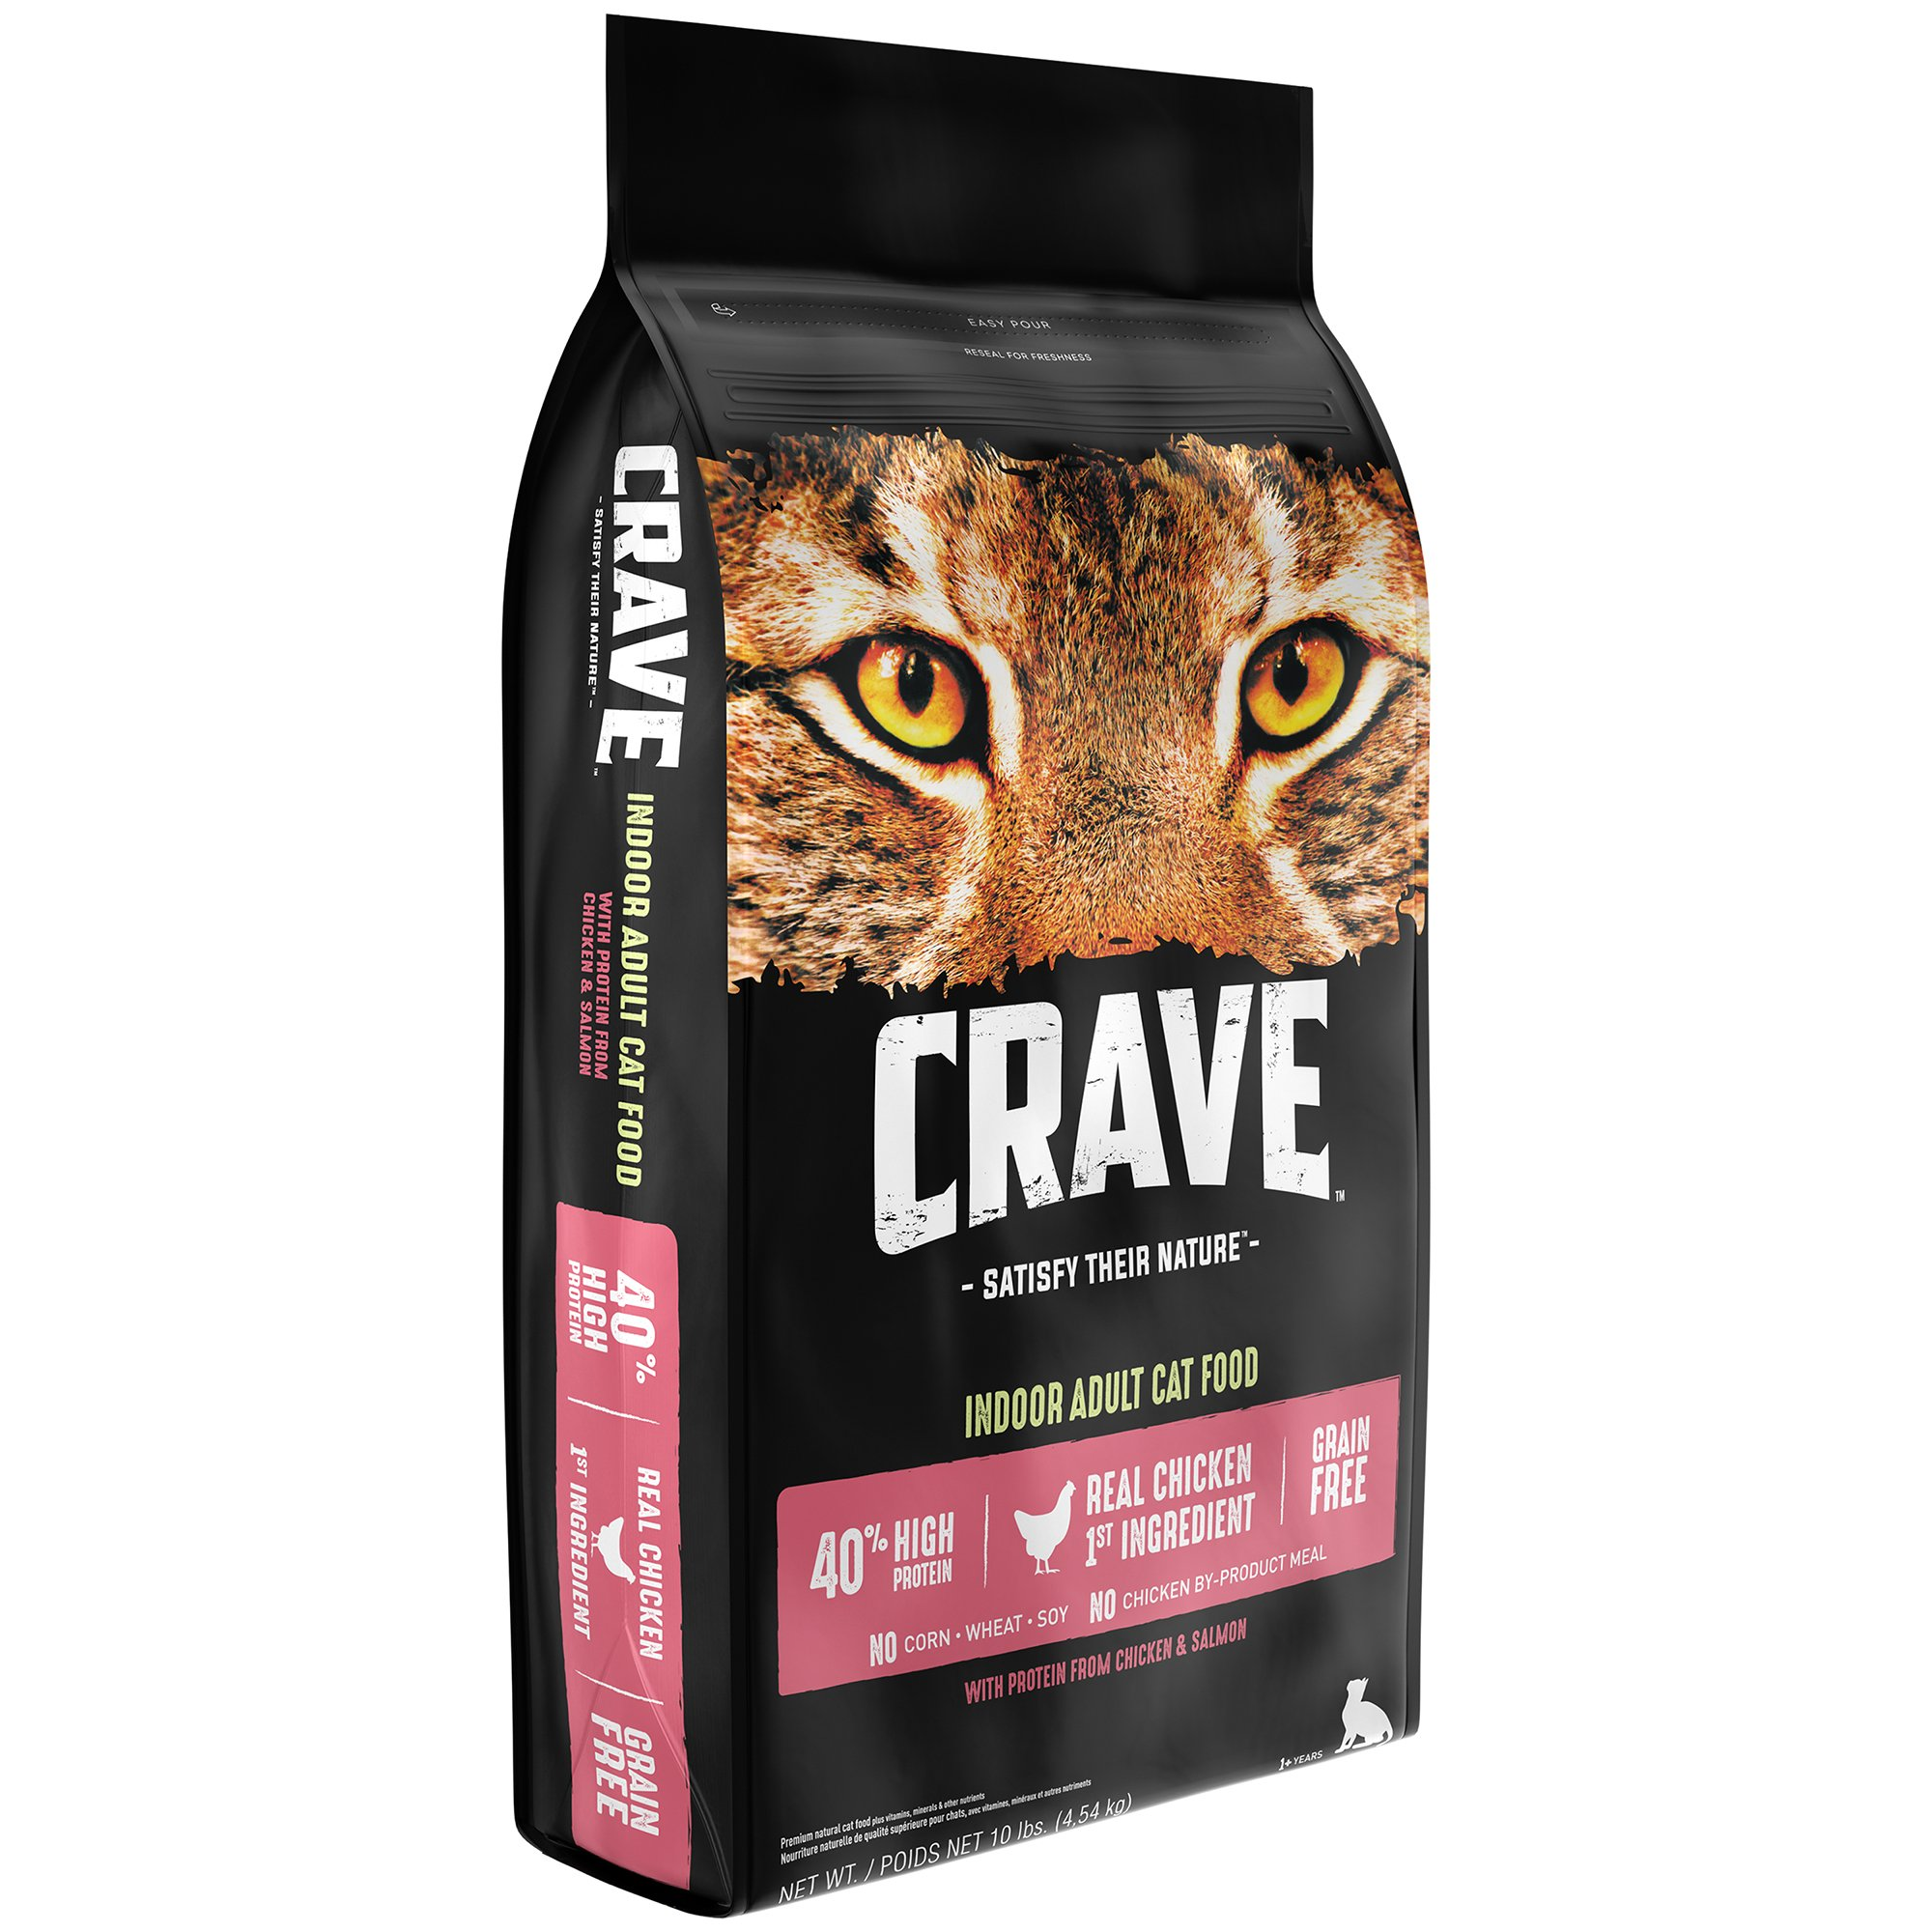 Crave Grain Free With Protein From Chicken & Salmon Dry Indoor Adult Cat Food, 10 Pound Bag by CRAVE